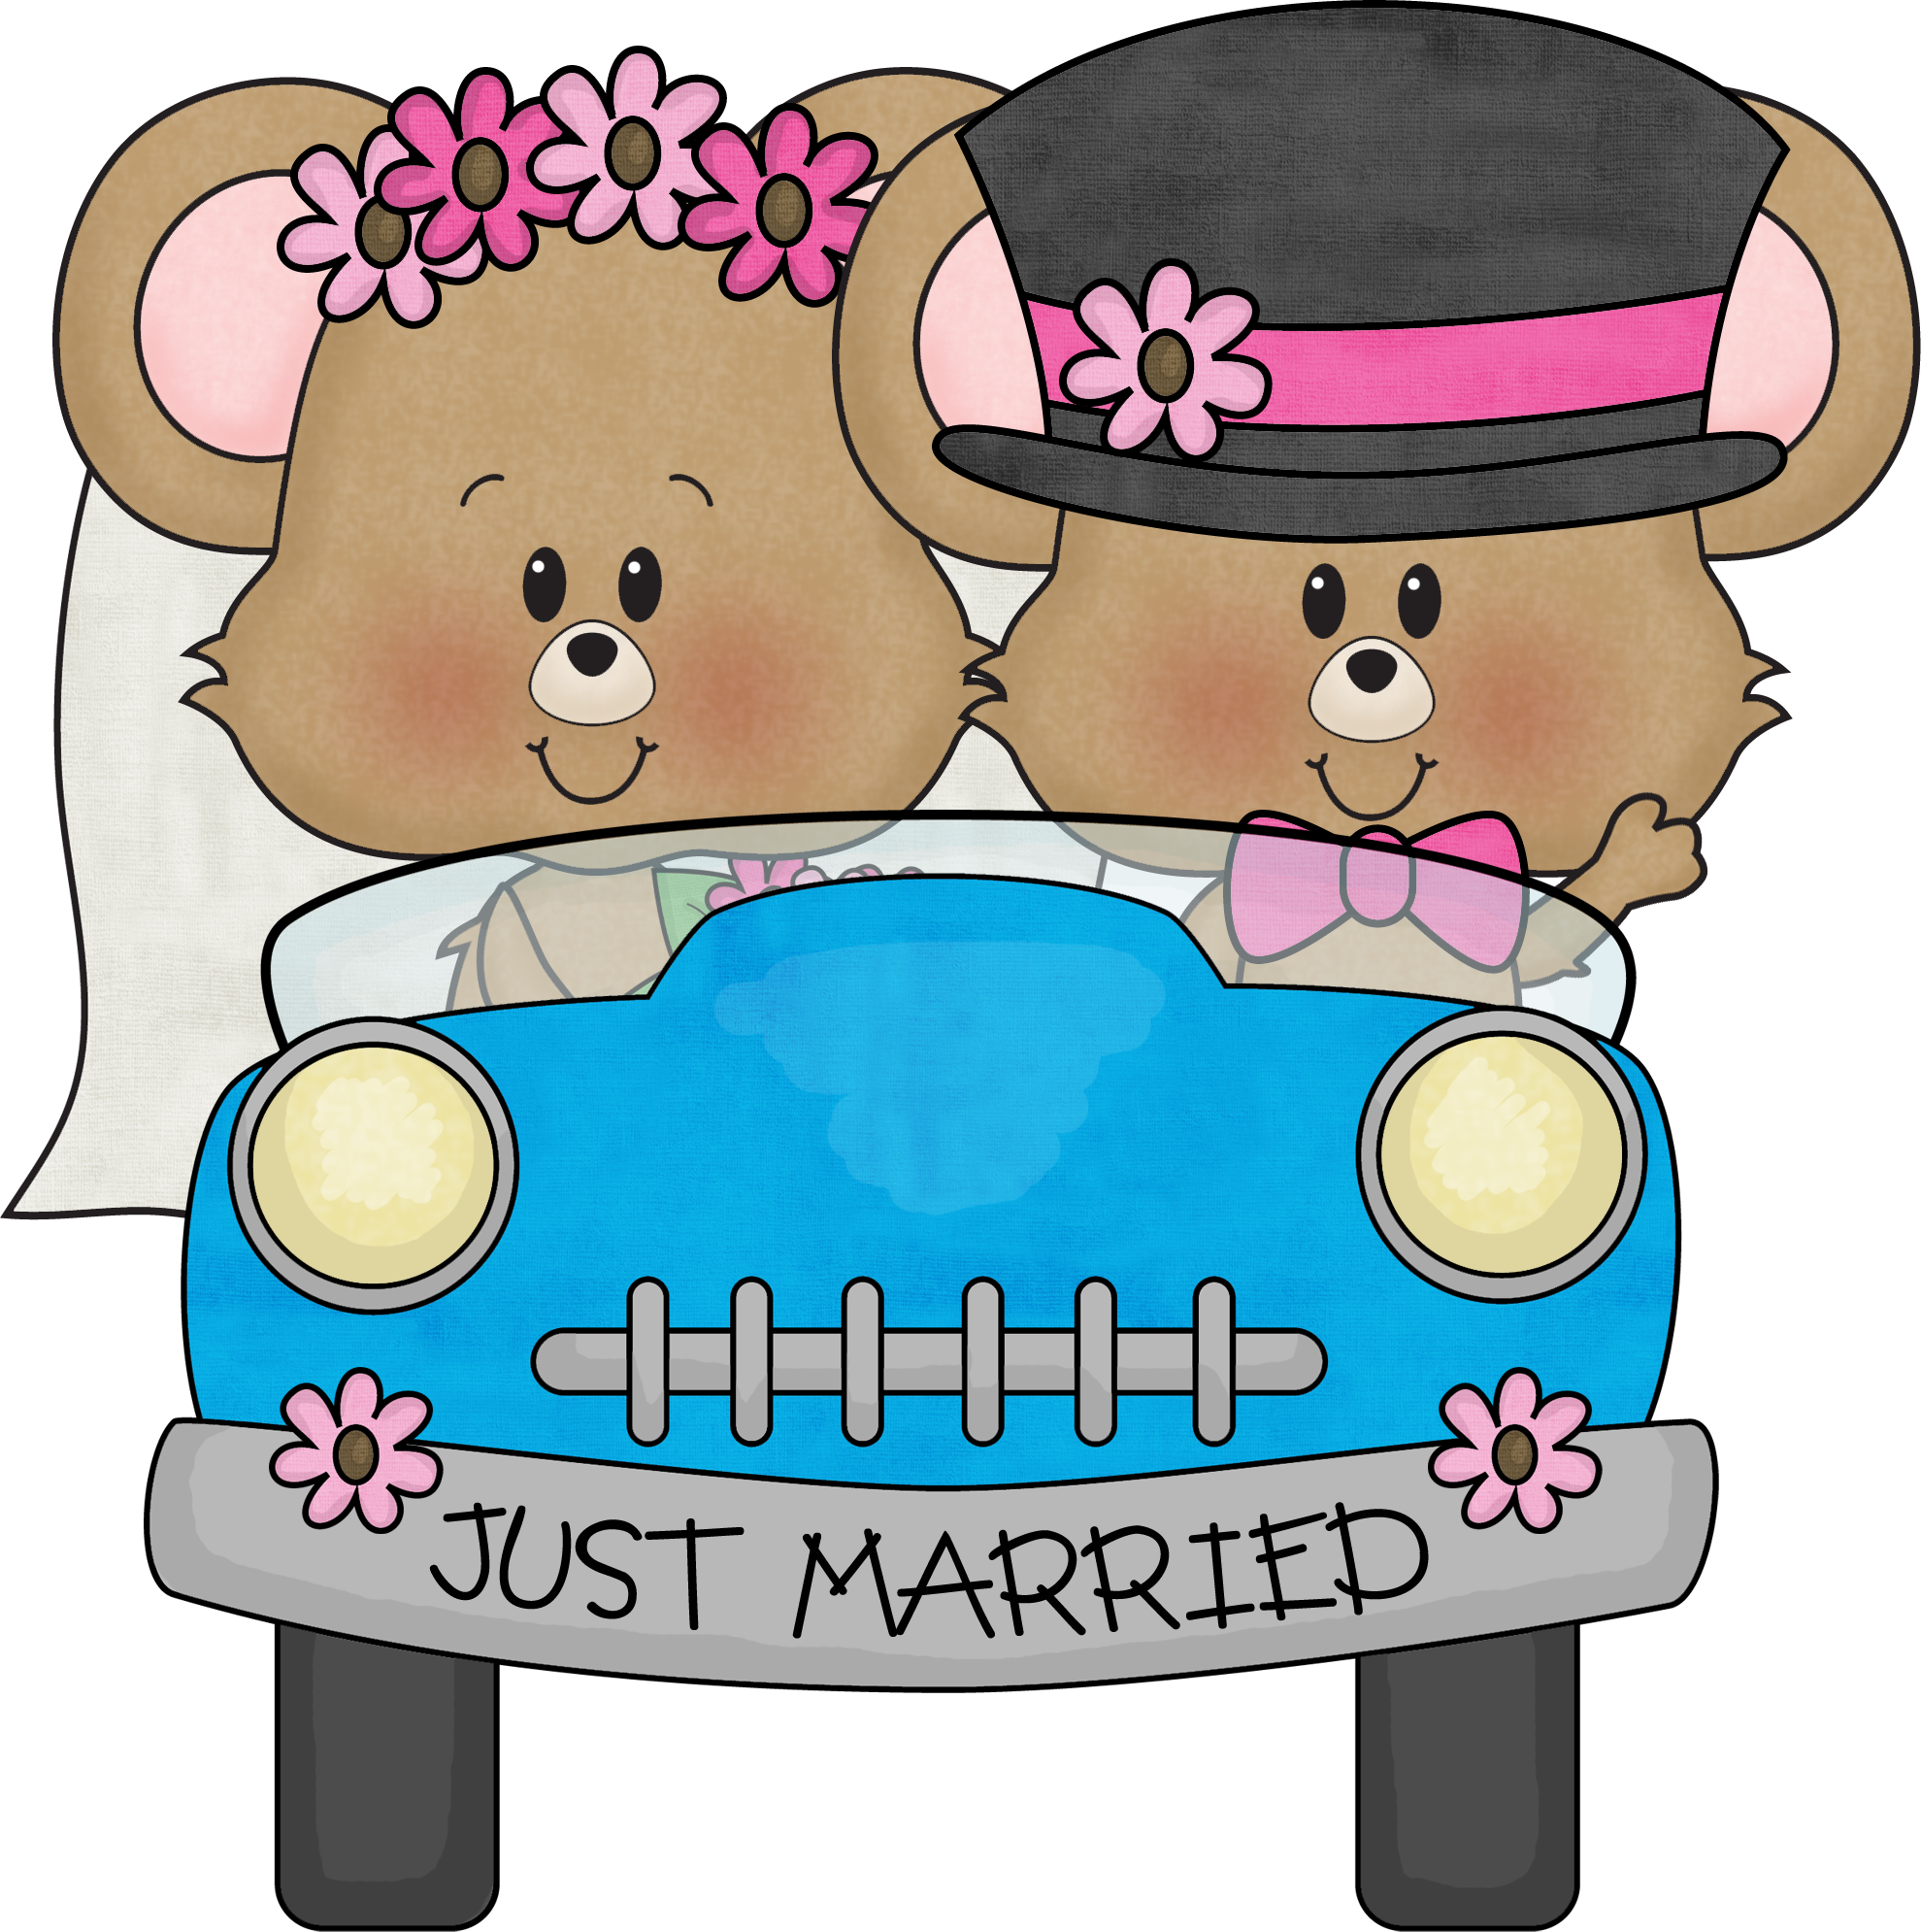 Clipart happy anniversary free jpg freeuse library Dibujos. Clipart. Digi stamp - Wedding - Just Married | Happy ... jpg freeuse library